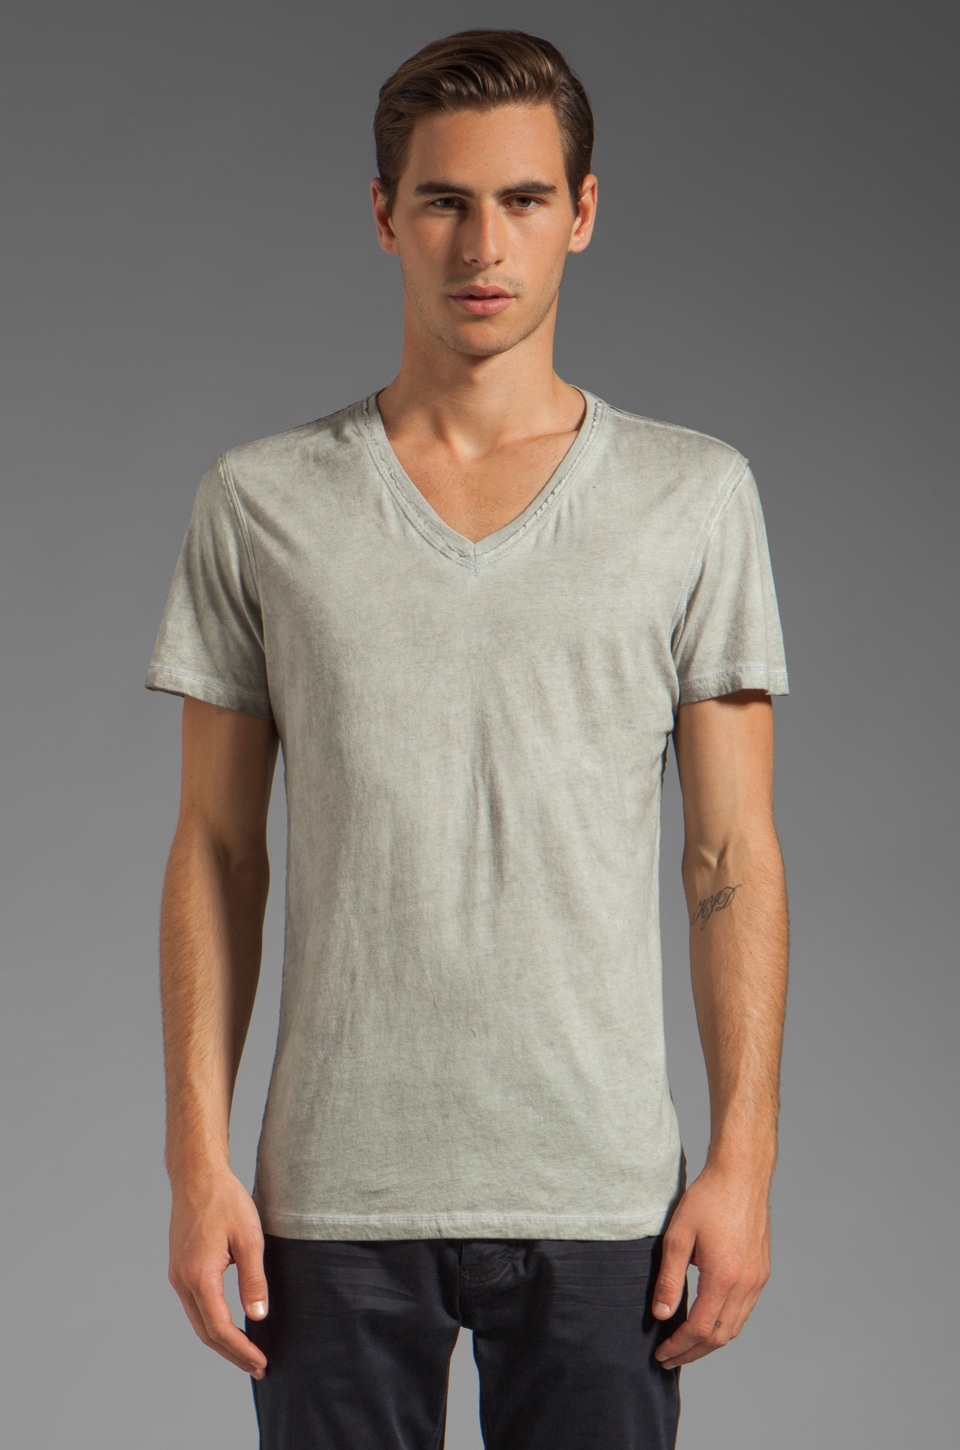 Rogue Short Sleeve V Neck Tee in Light Grey